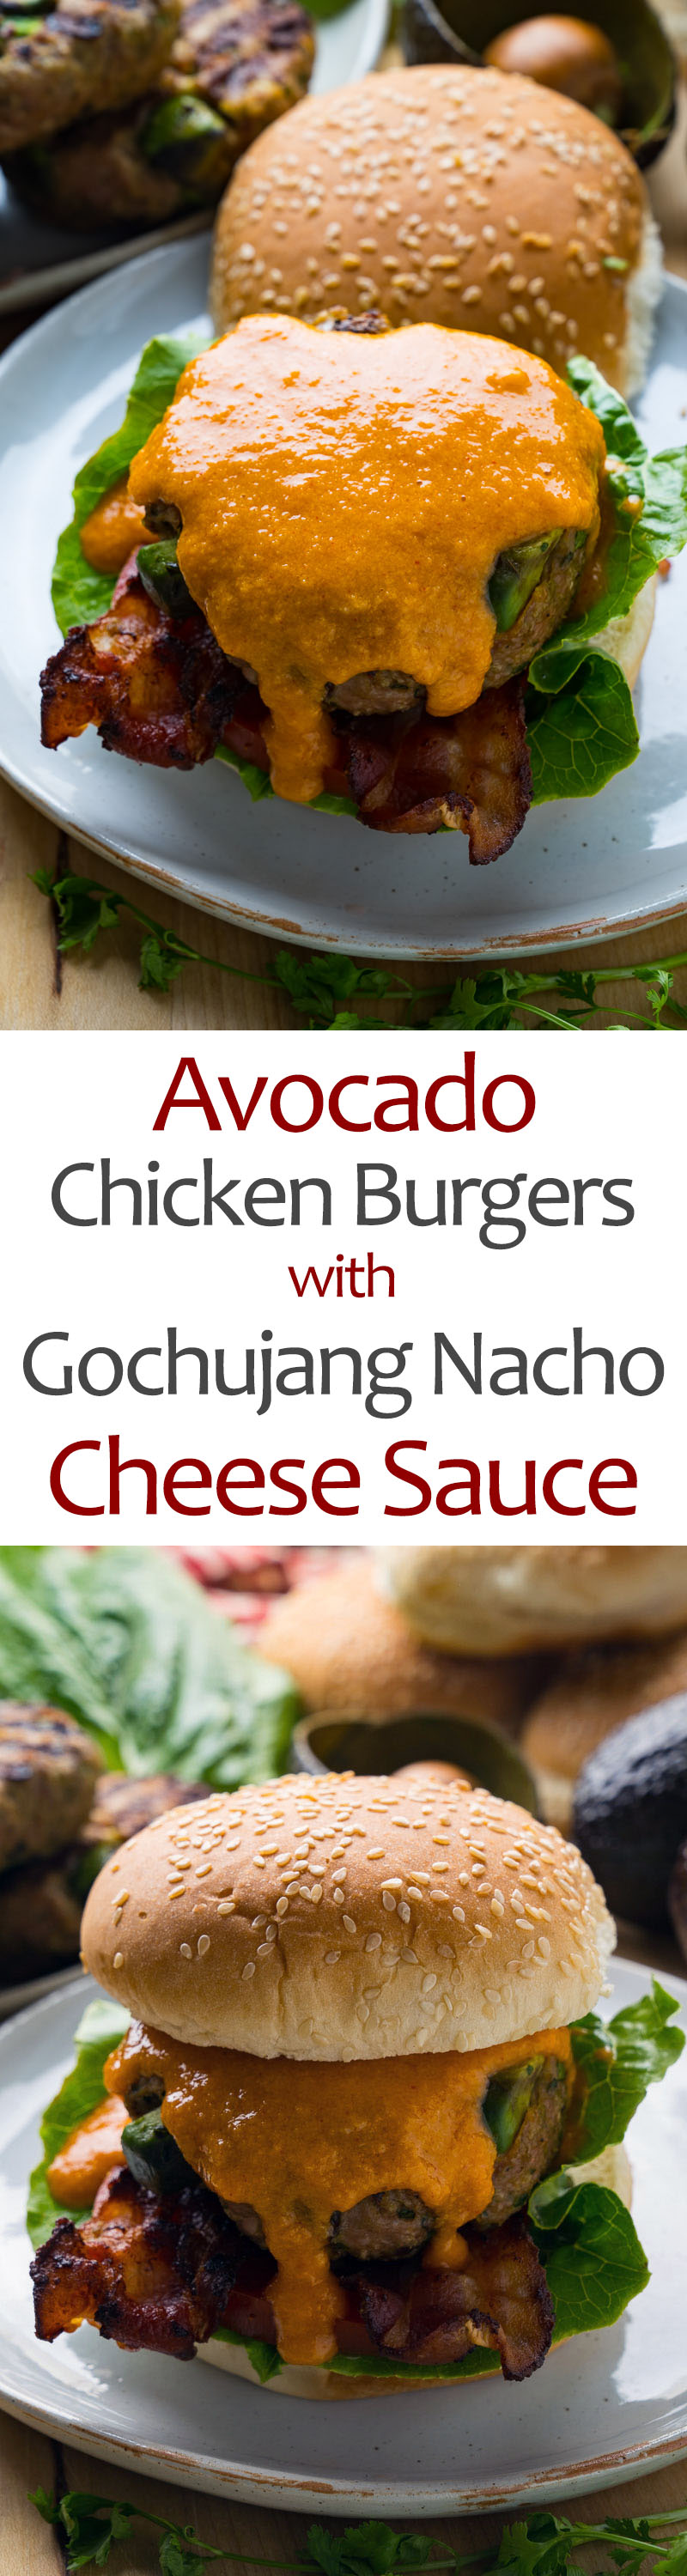 Avocado Chicken Burgers with Gochujang Nacho Cheese Sauce and Bacon